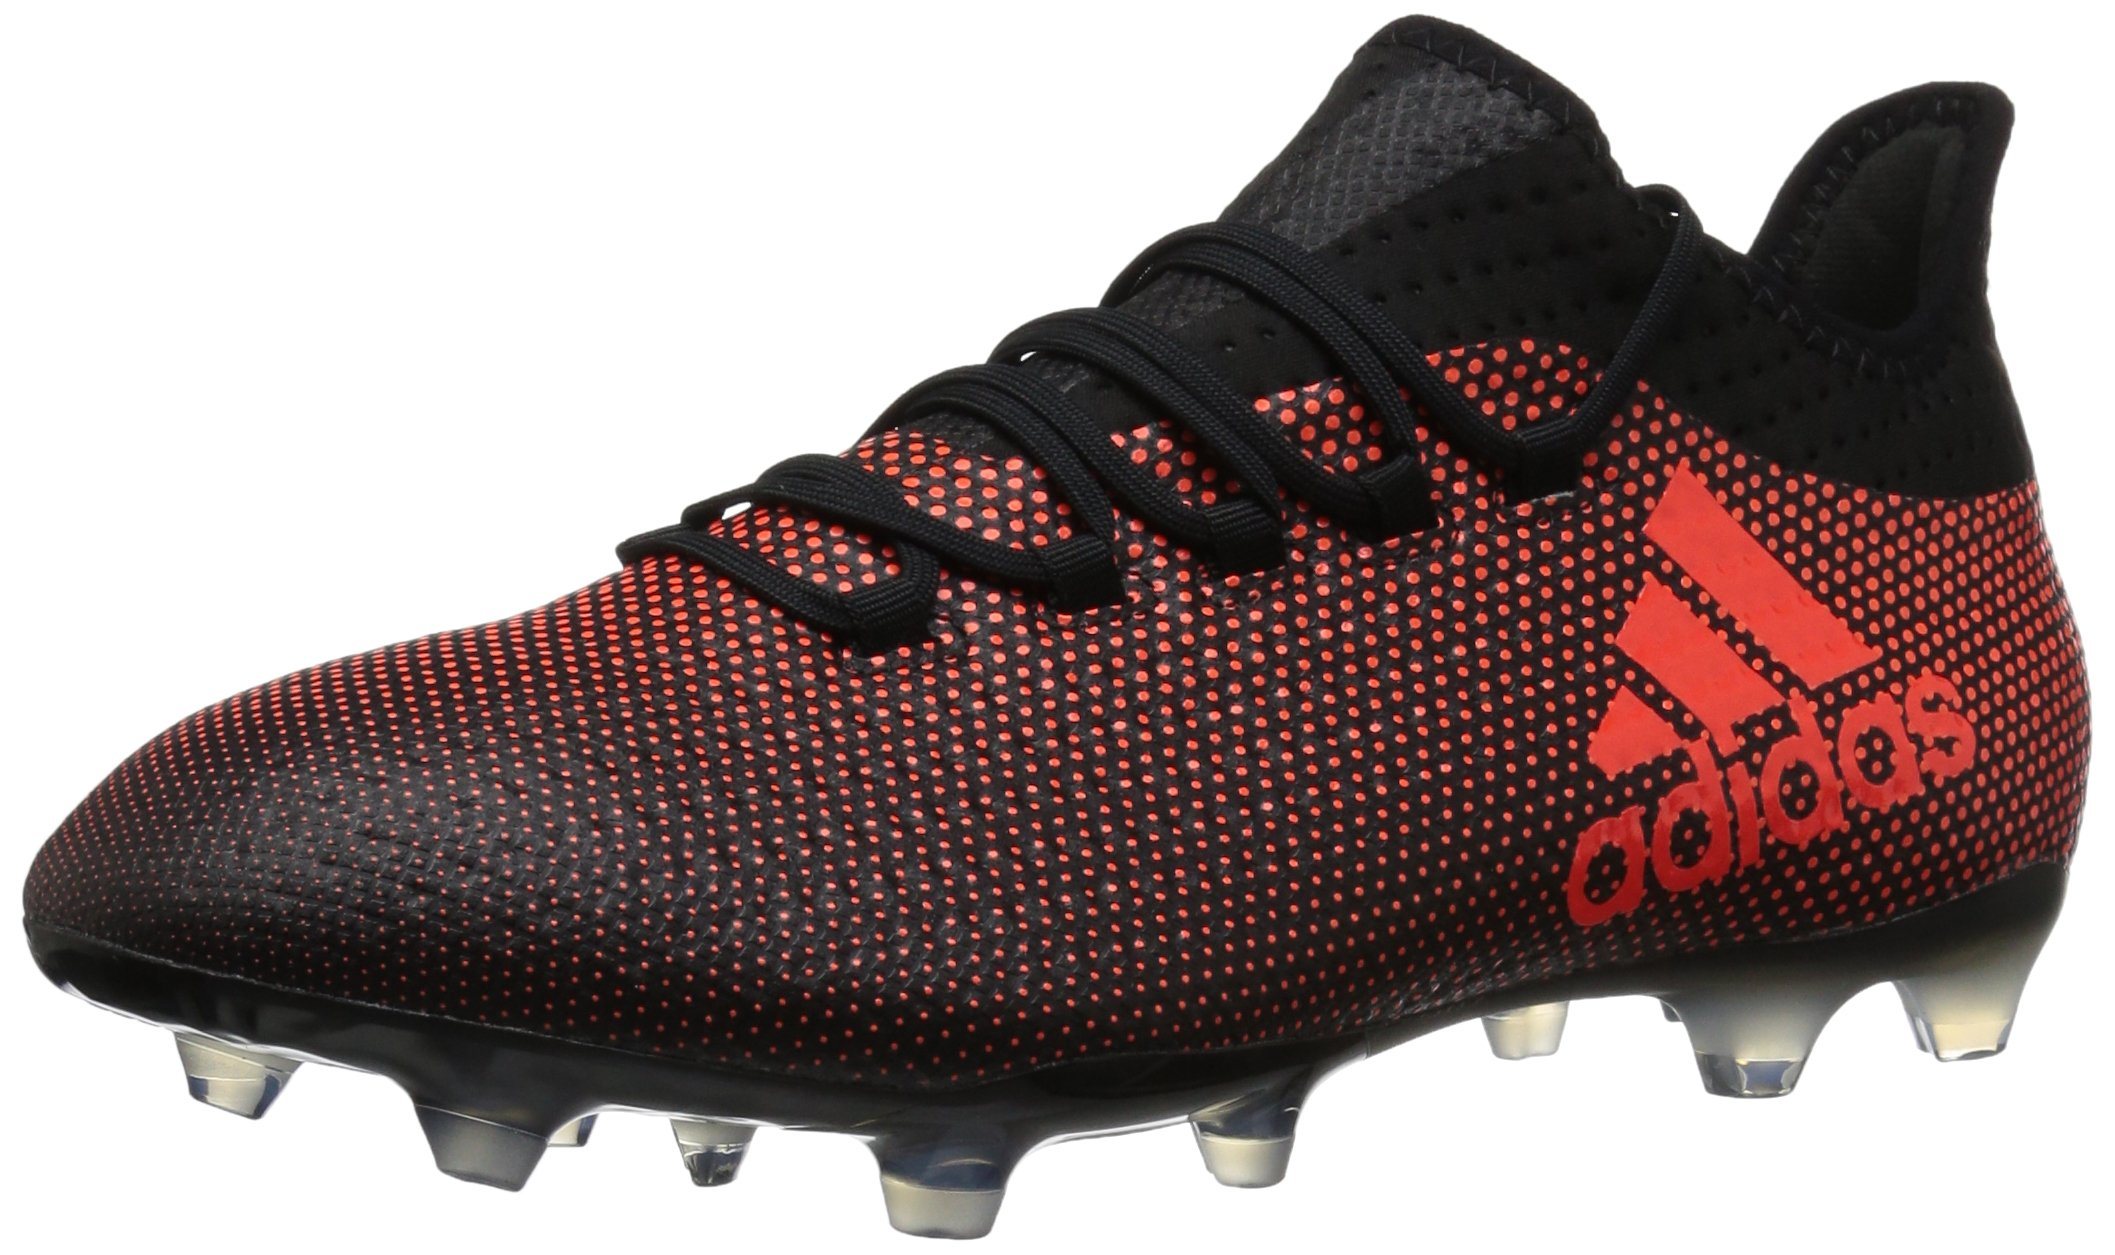 adidas Men's X 17.2 FG Soccer Shoe, Black/Solar Red/Solar Orange, 10.5 M US